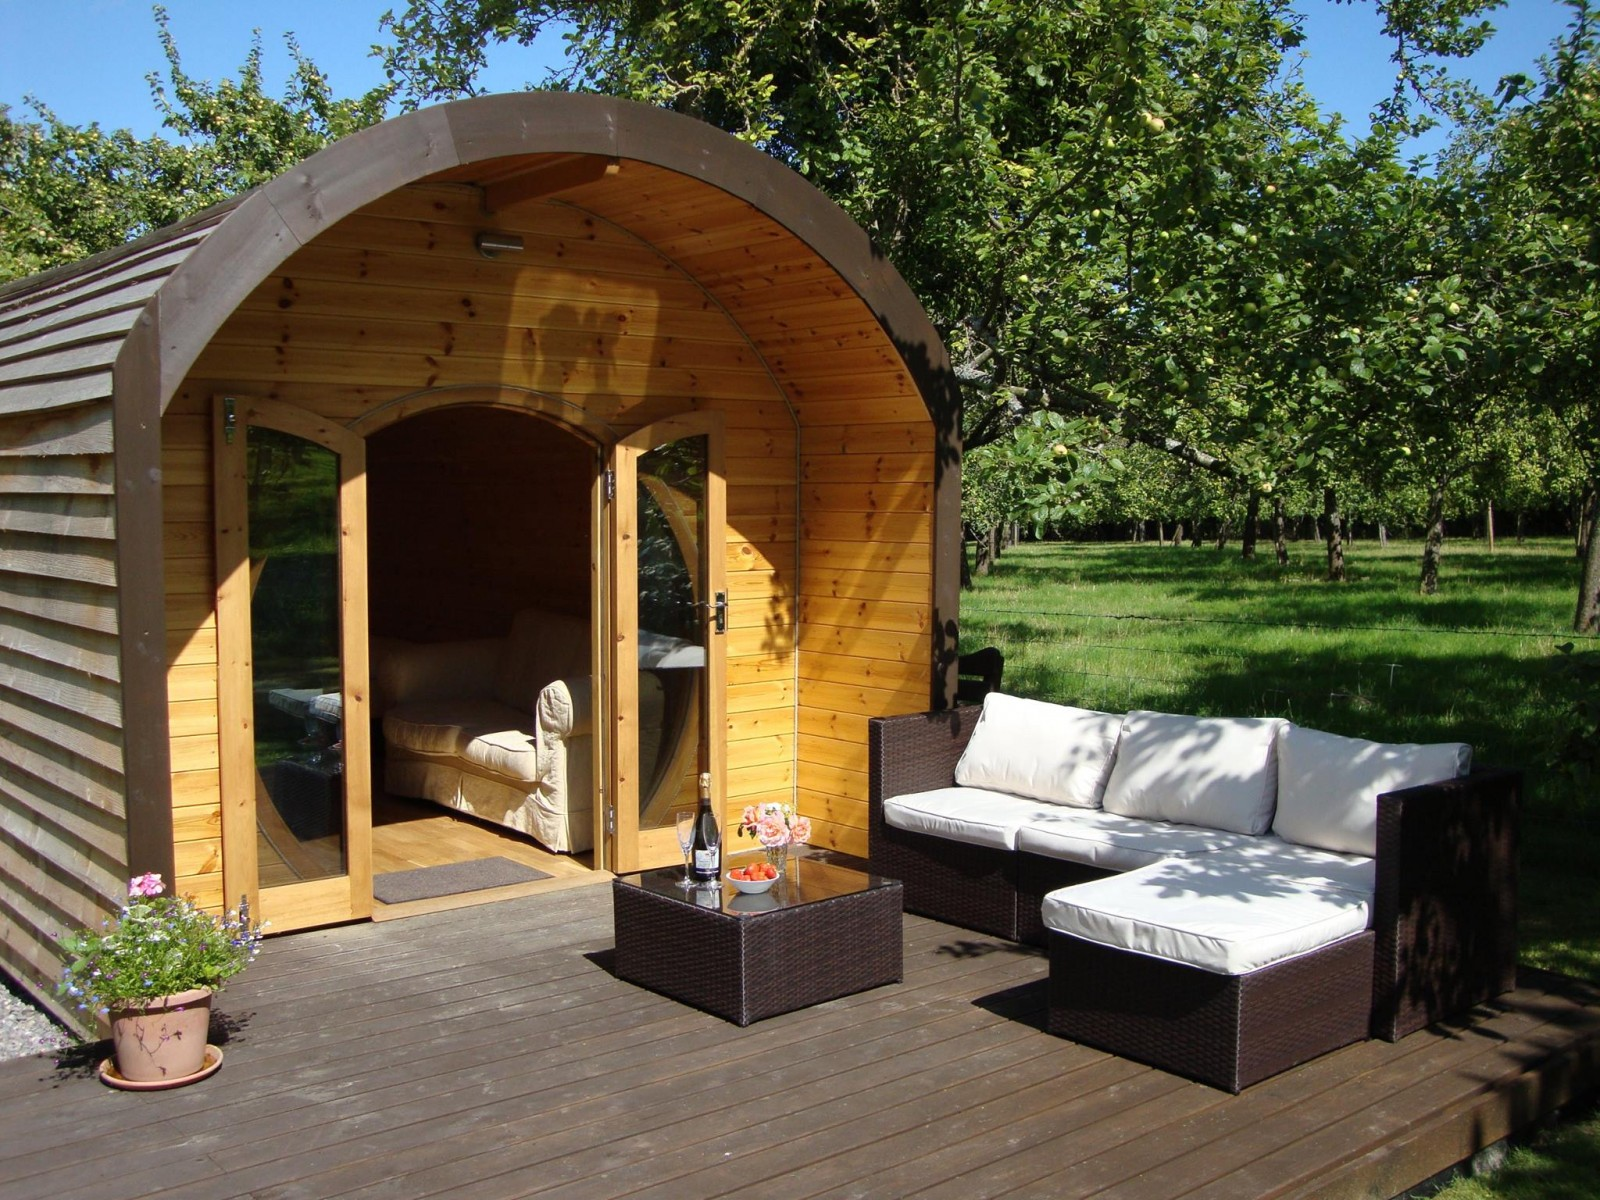 Orchard Farm Luxury Glamping 1